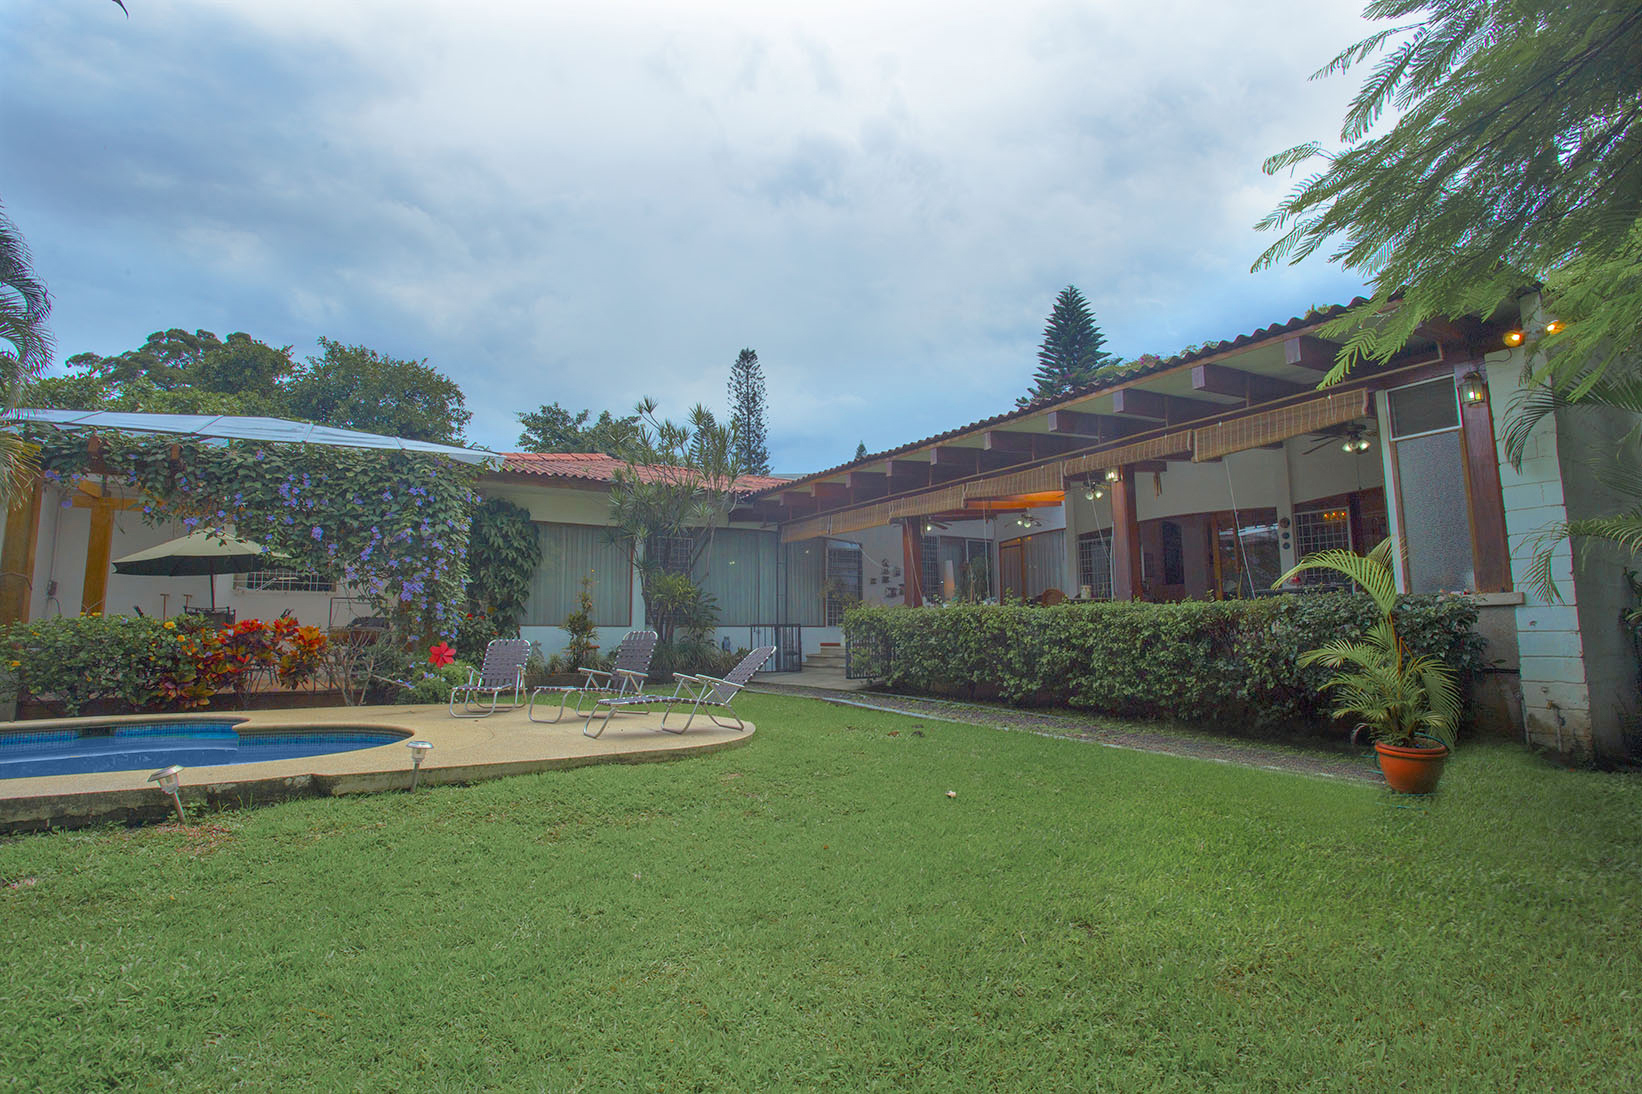 Single Family Home for Sale at Pool Residence in Escazu Escazu, San Jose Costa Rica